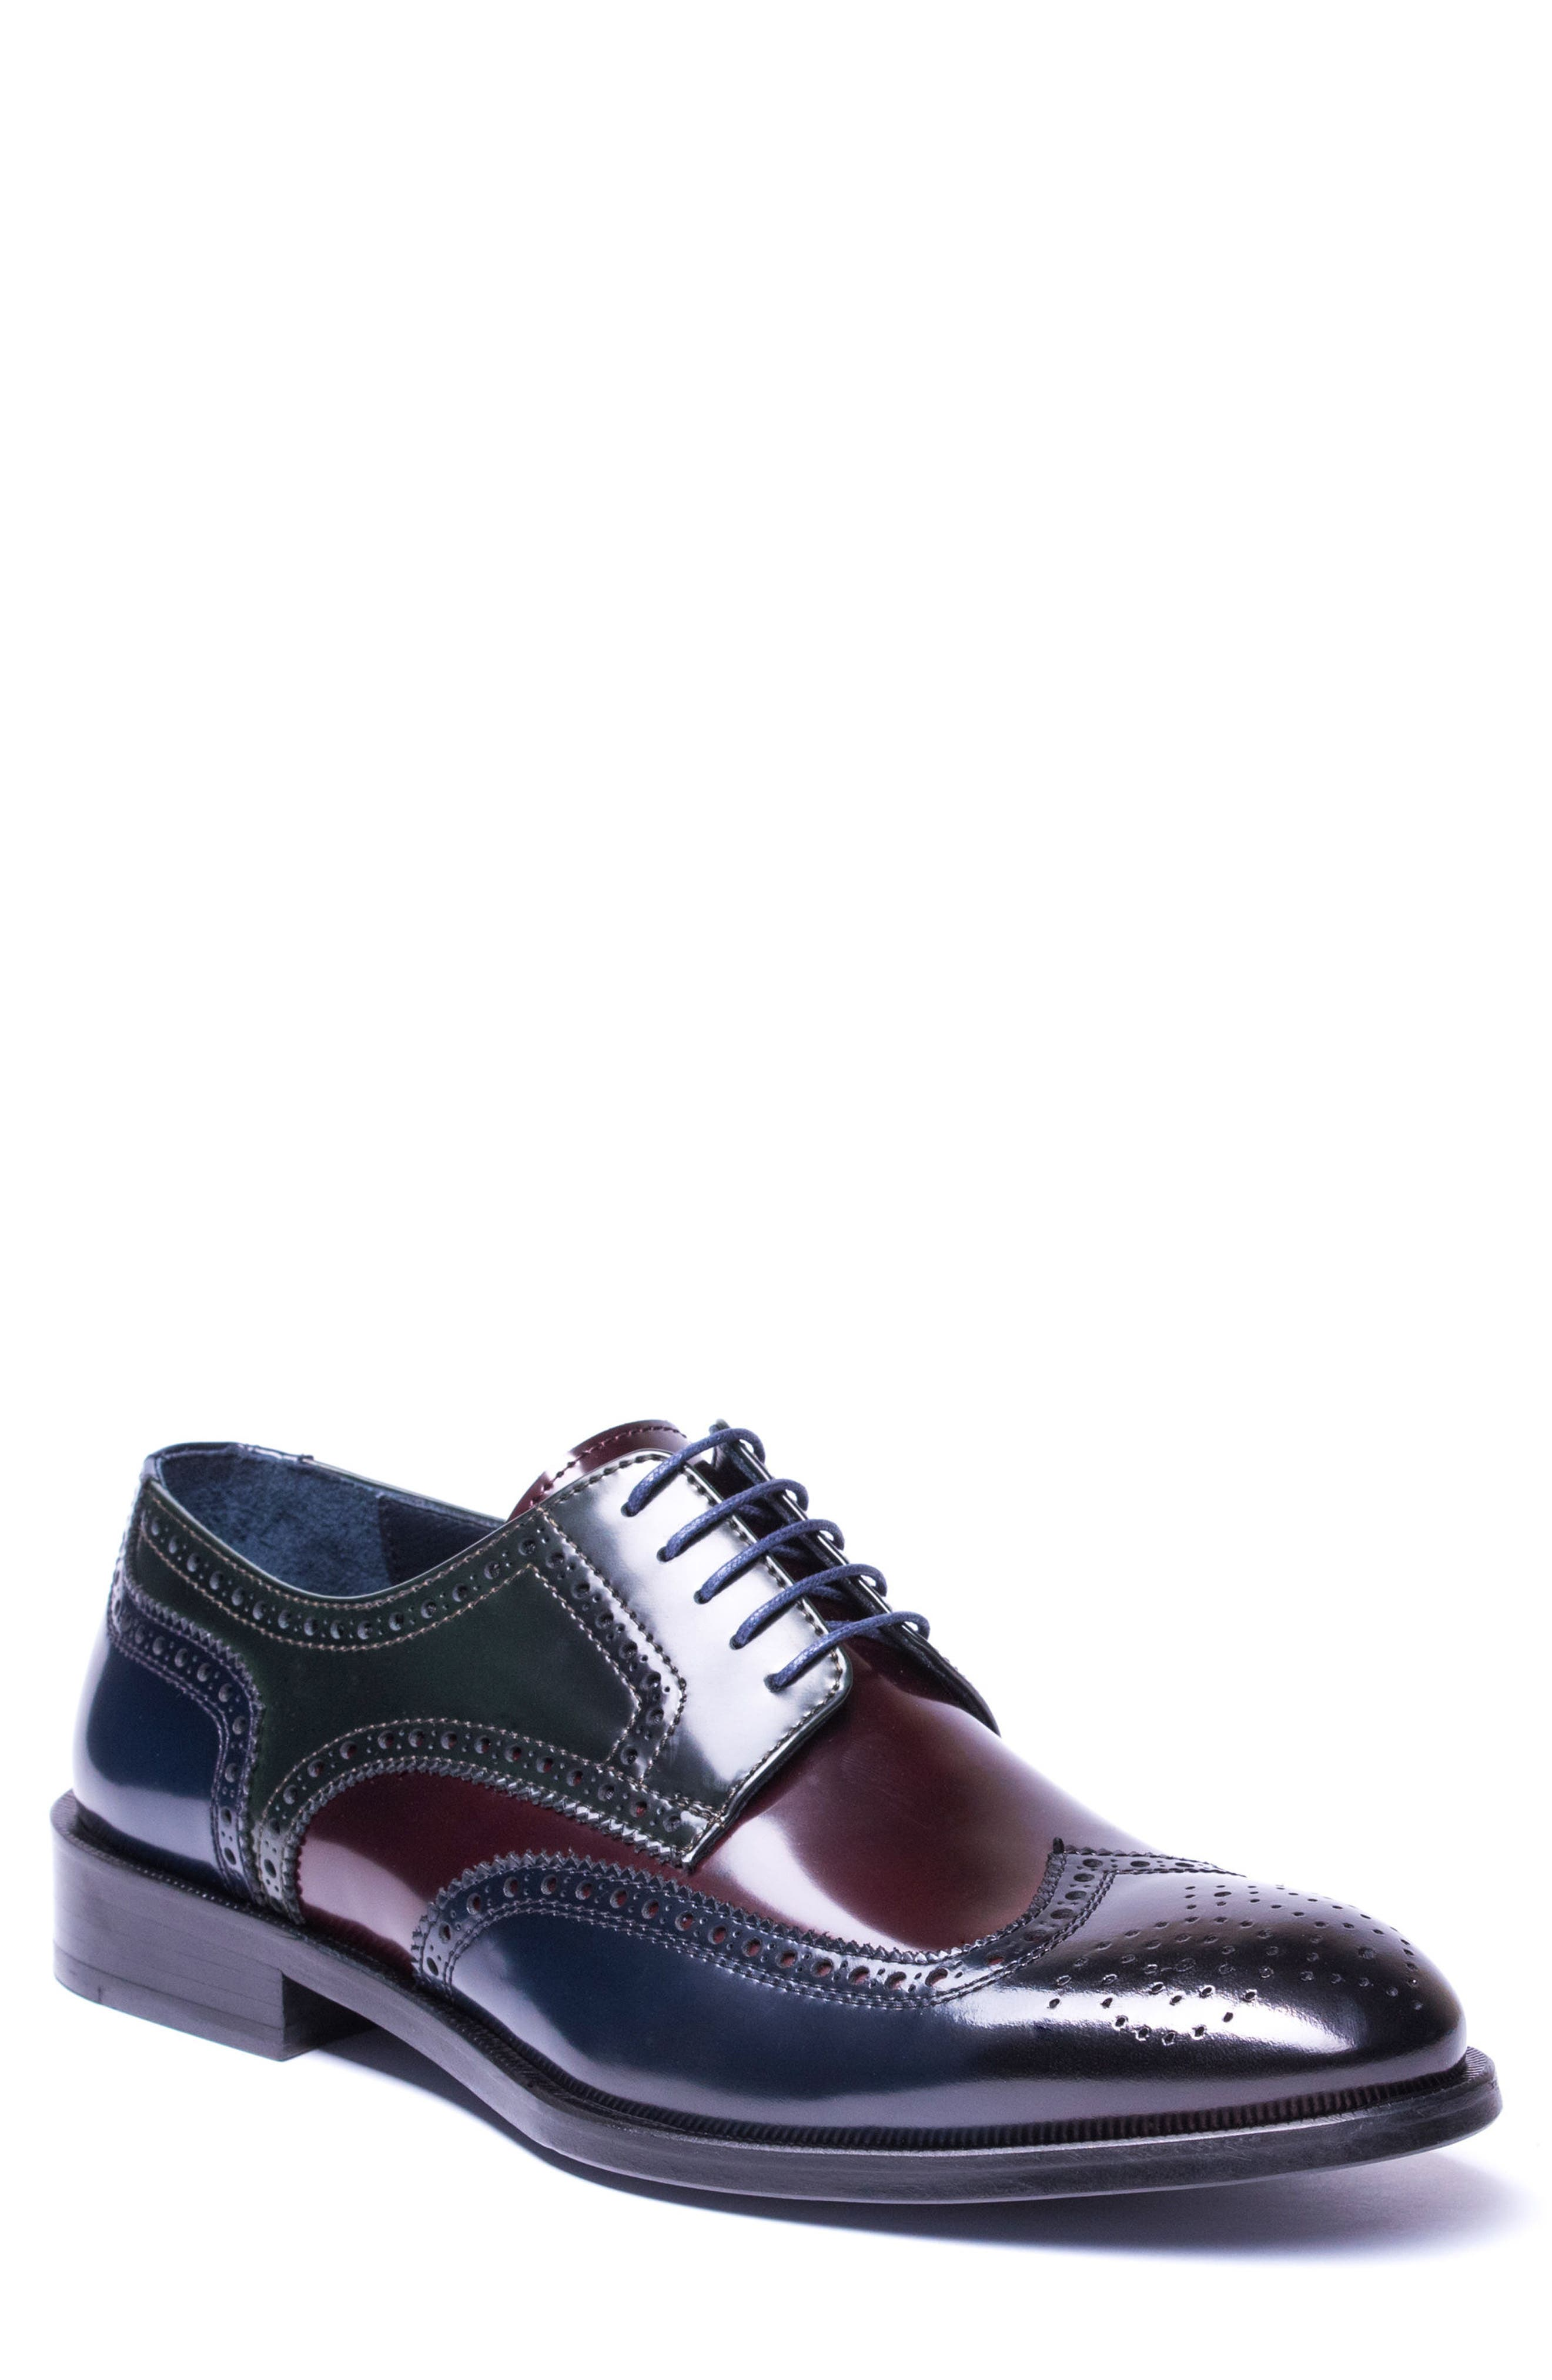 Bryce Wingtip Derby,                             Main thumbnail 1, color,                             BROWN/ BLUE LEATHER